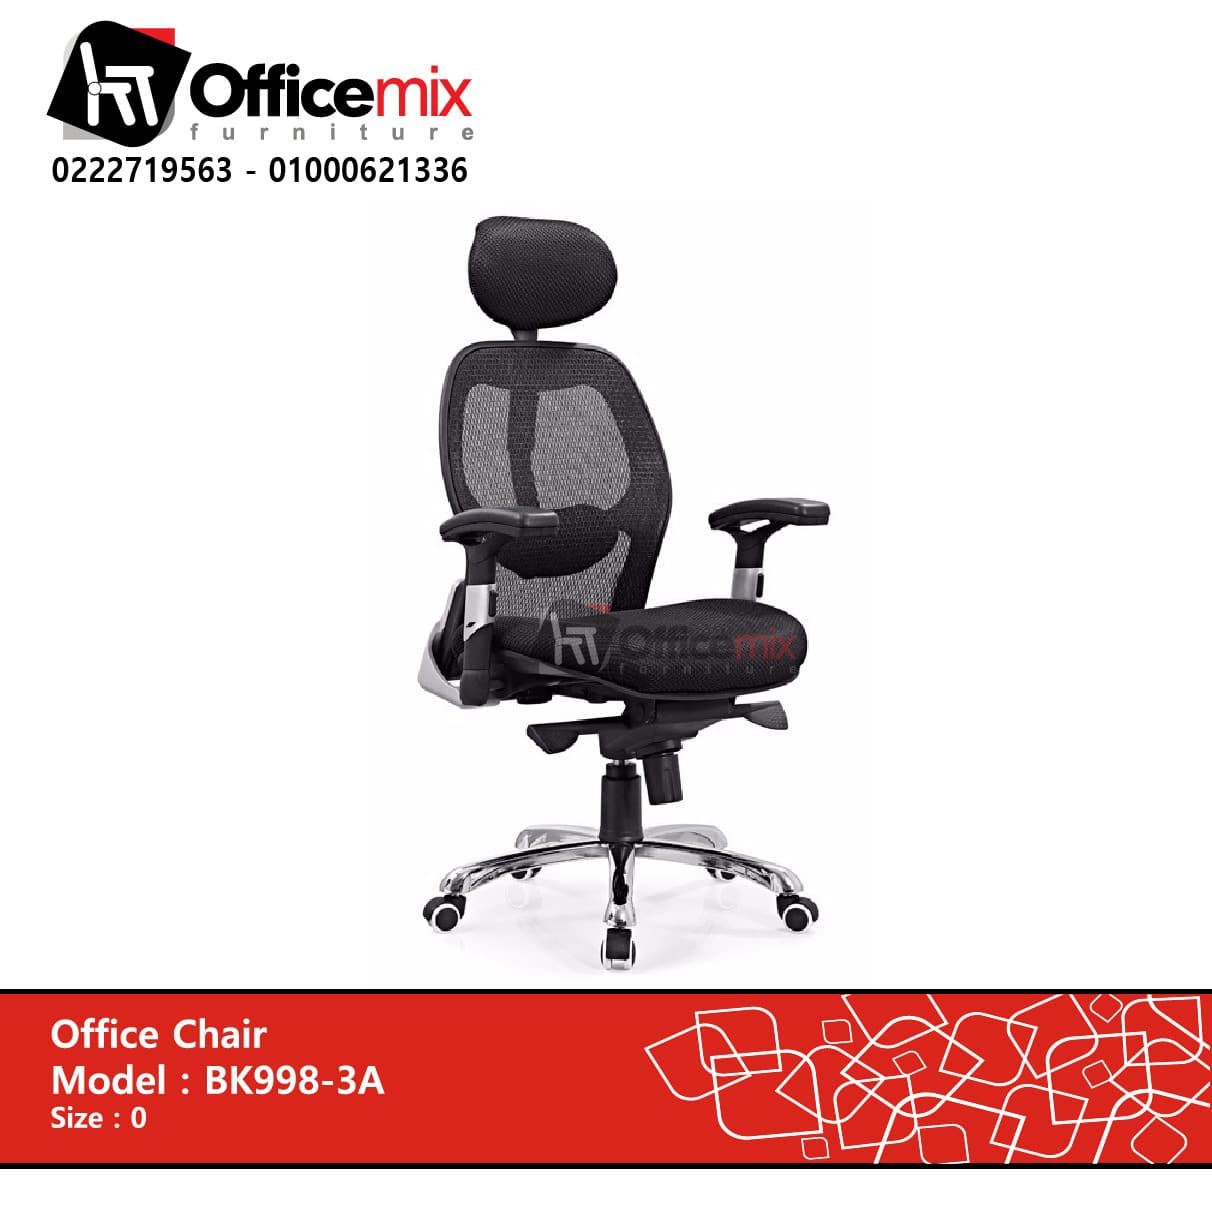 office mix manager chair BK998-3A